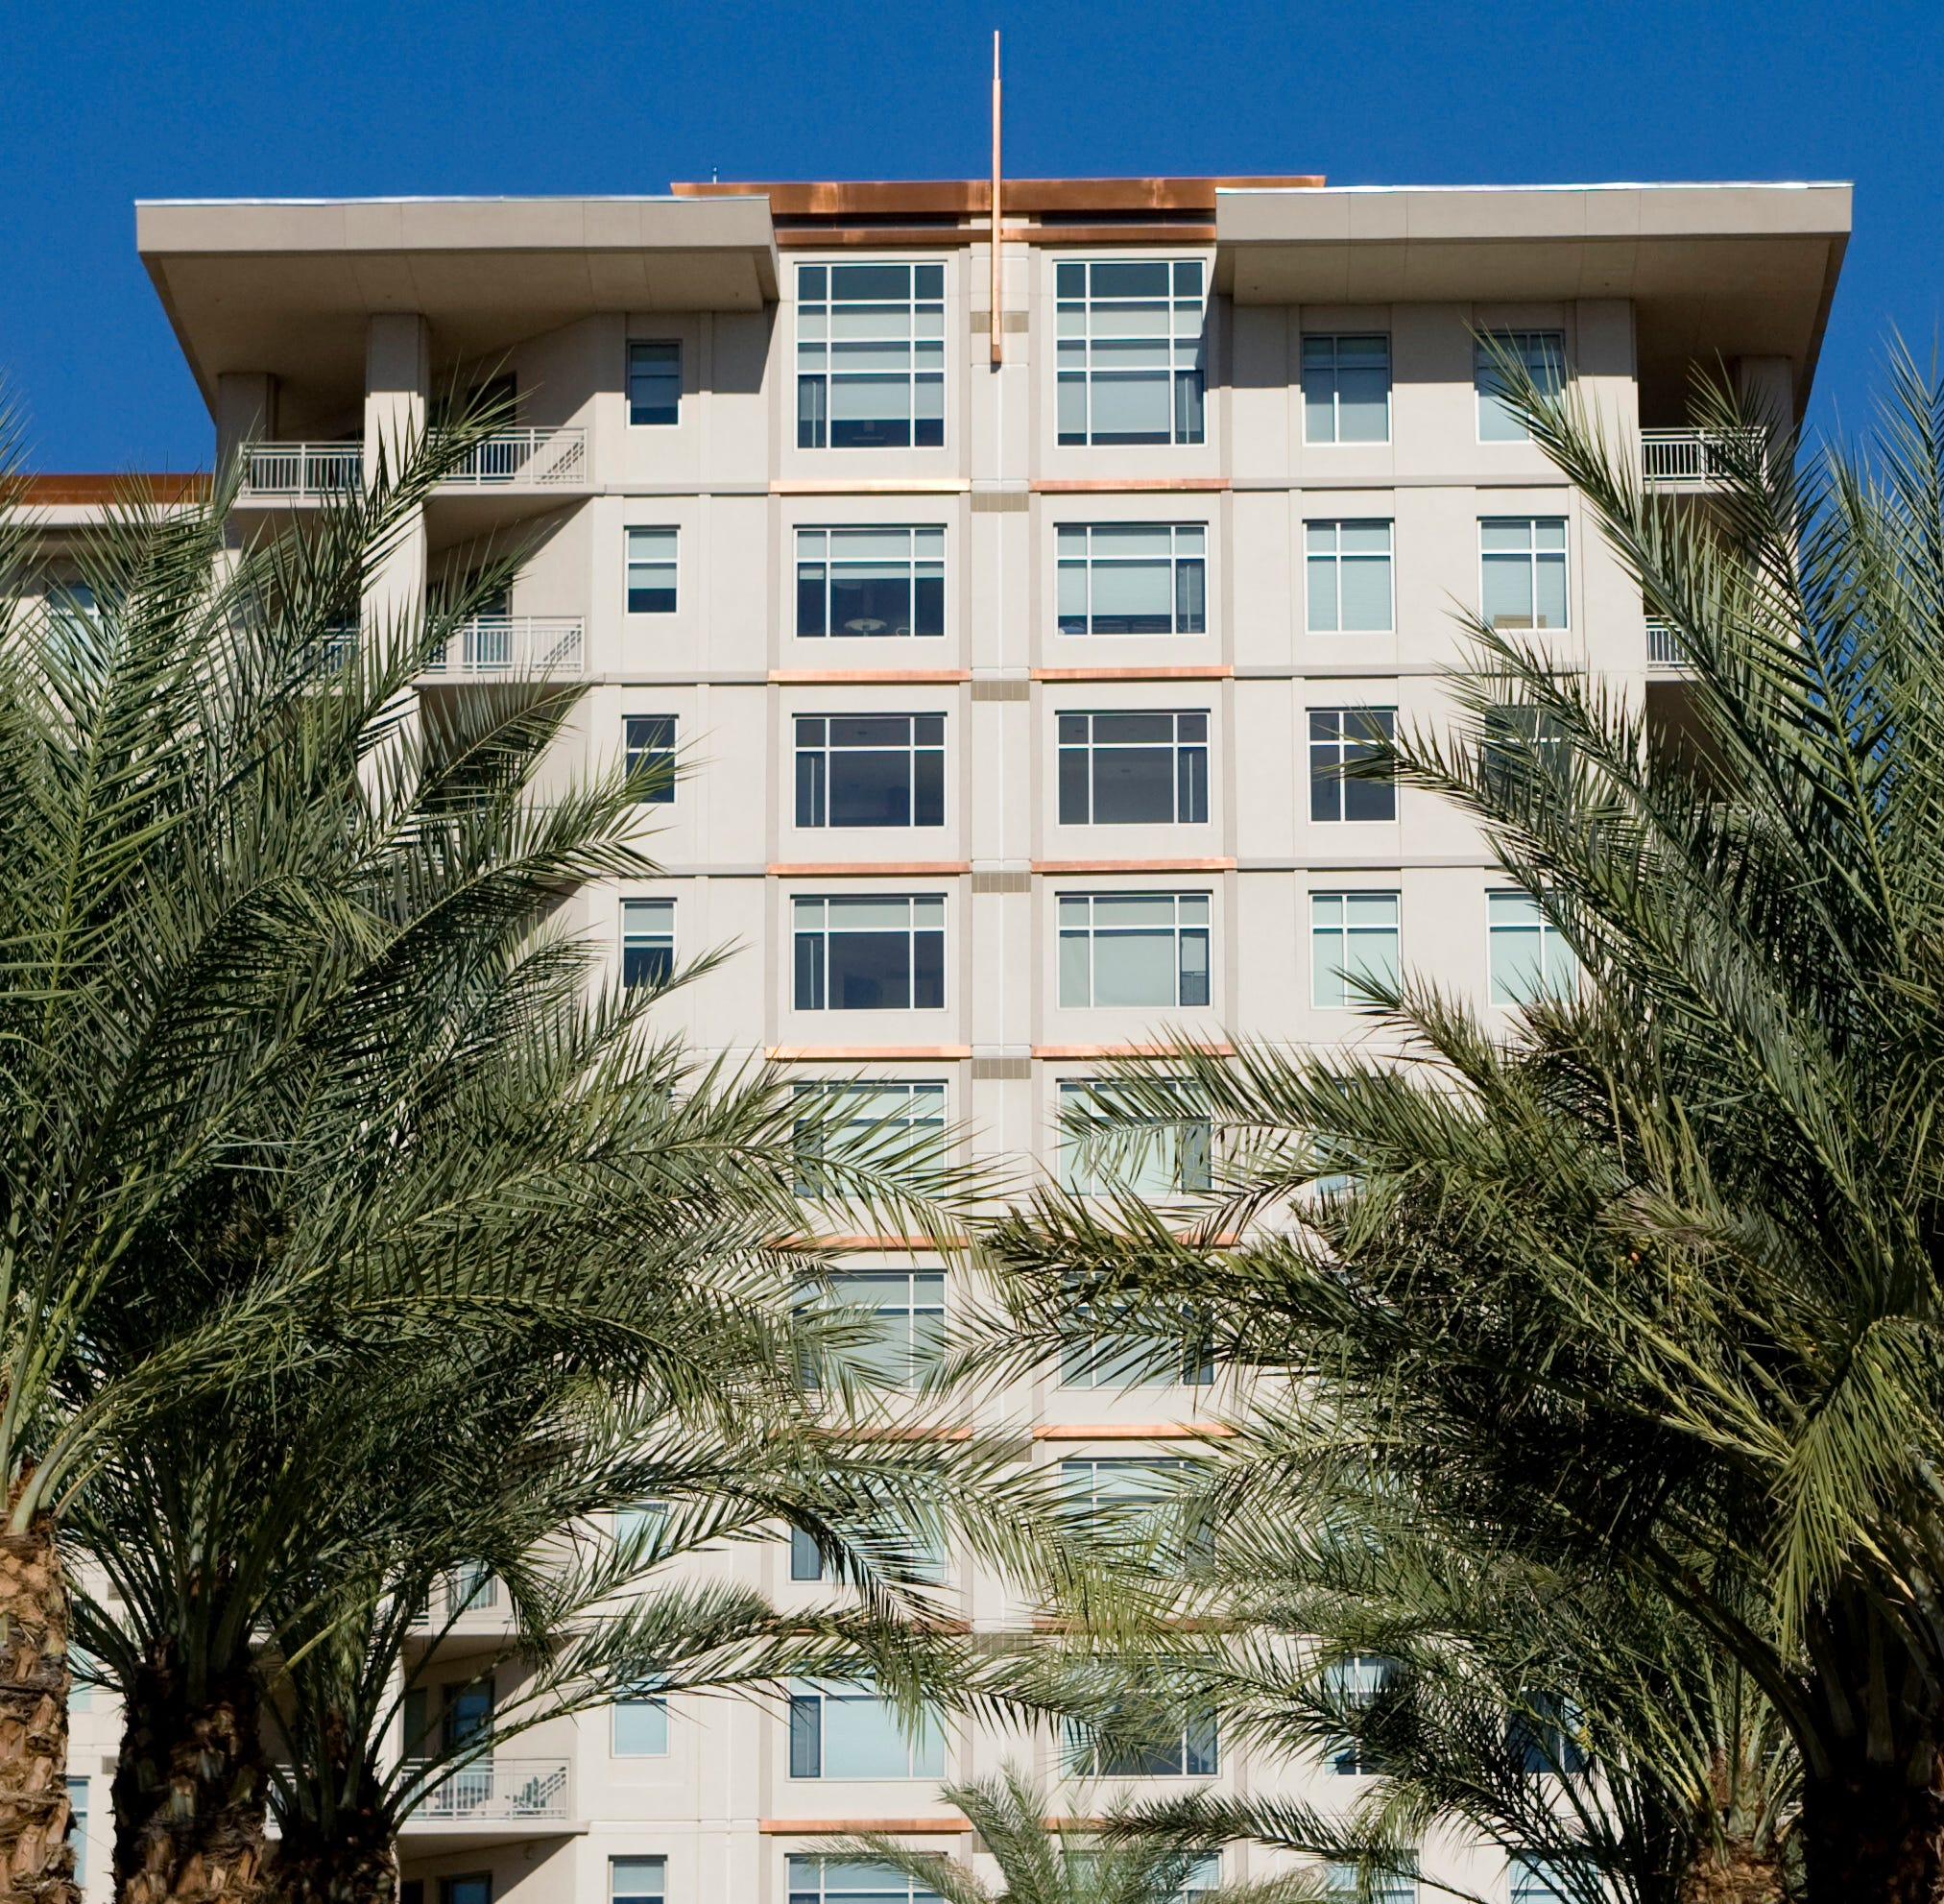 Late John McCain's Phoenix high-rise condo for sale: $3.1M